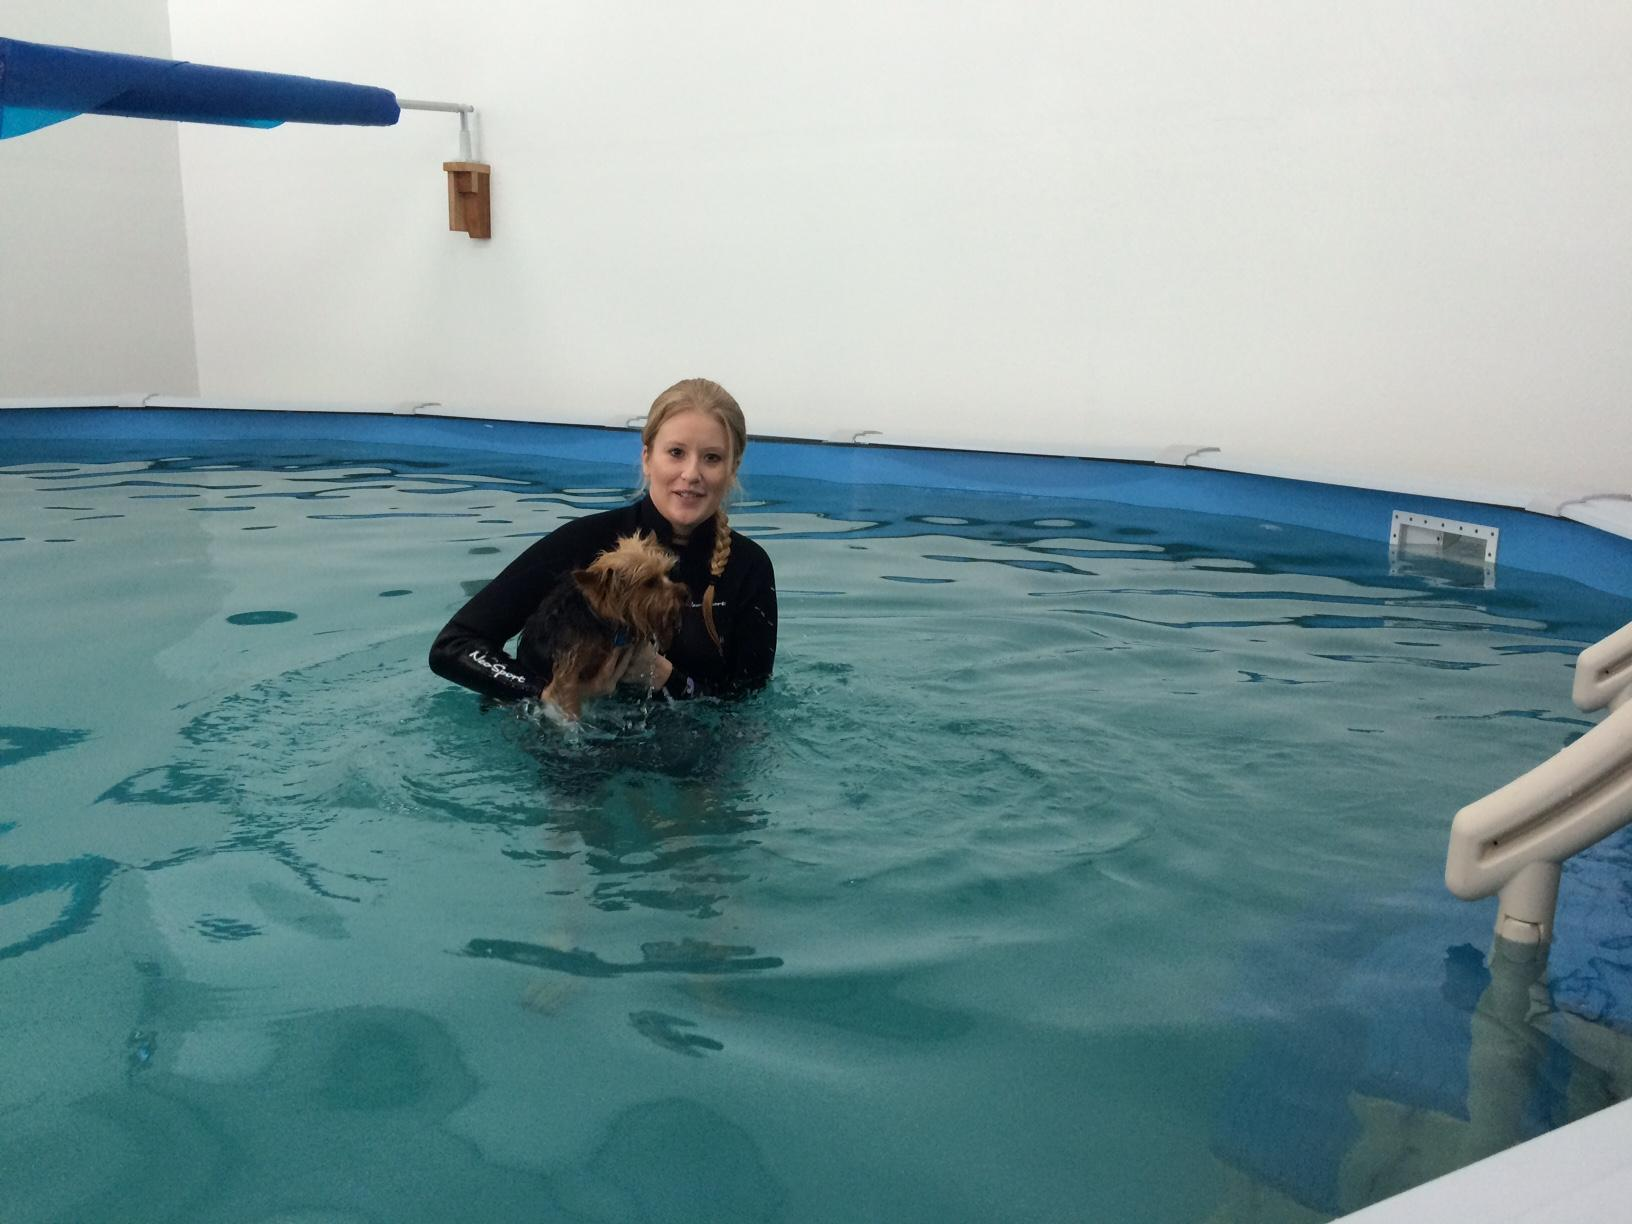 At 94 degrees, the jacuzzi-like water is therapeutic for older dogs or dogs with injuries. It also provides a quick and effective work-out for dogs of all ages and abilities. (SBG)